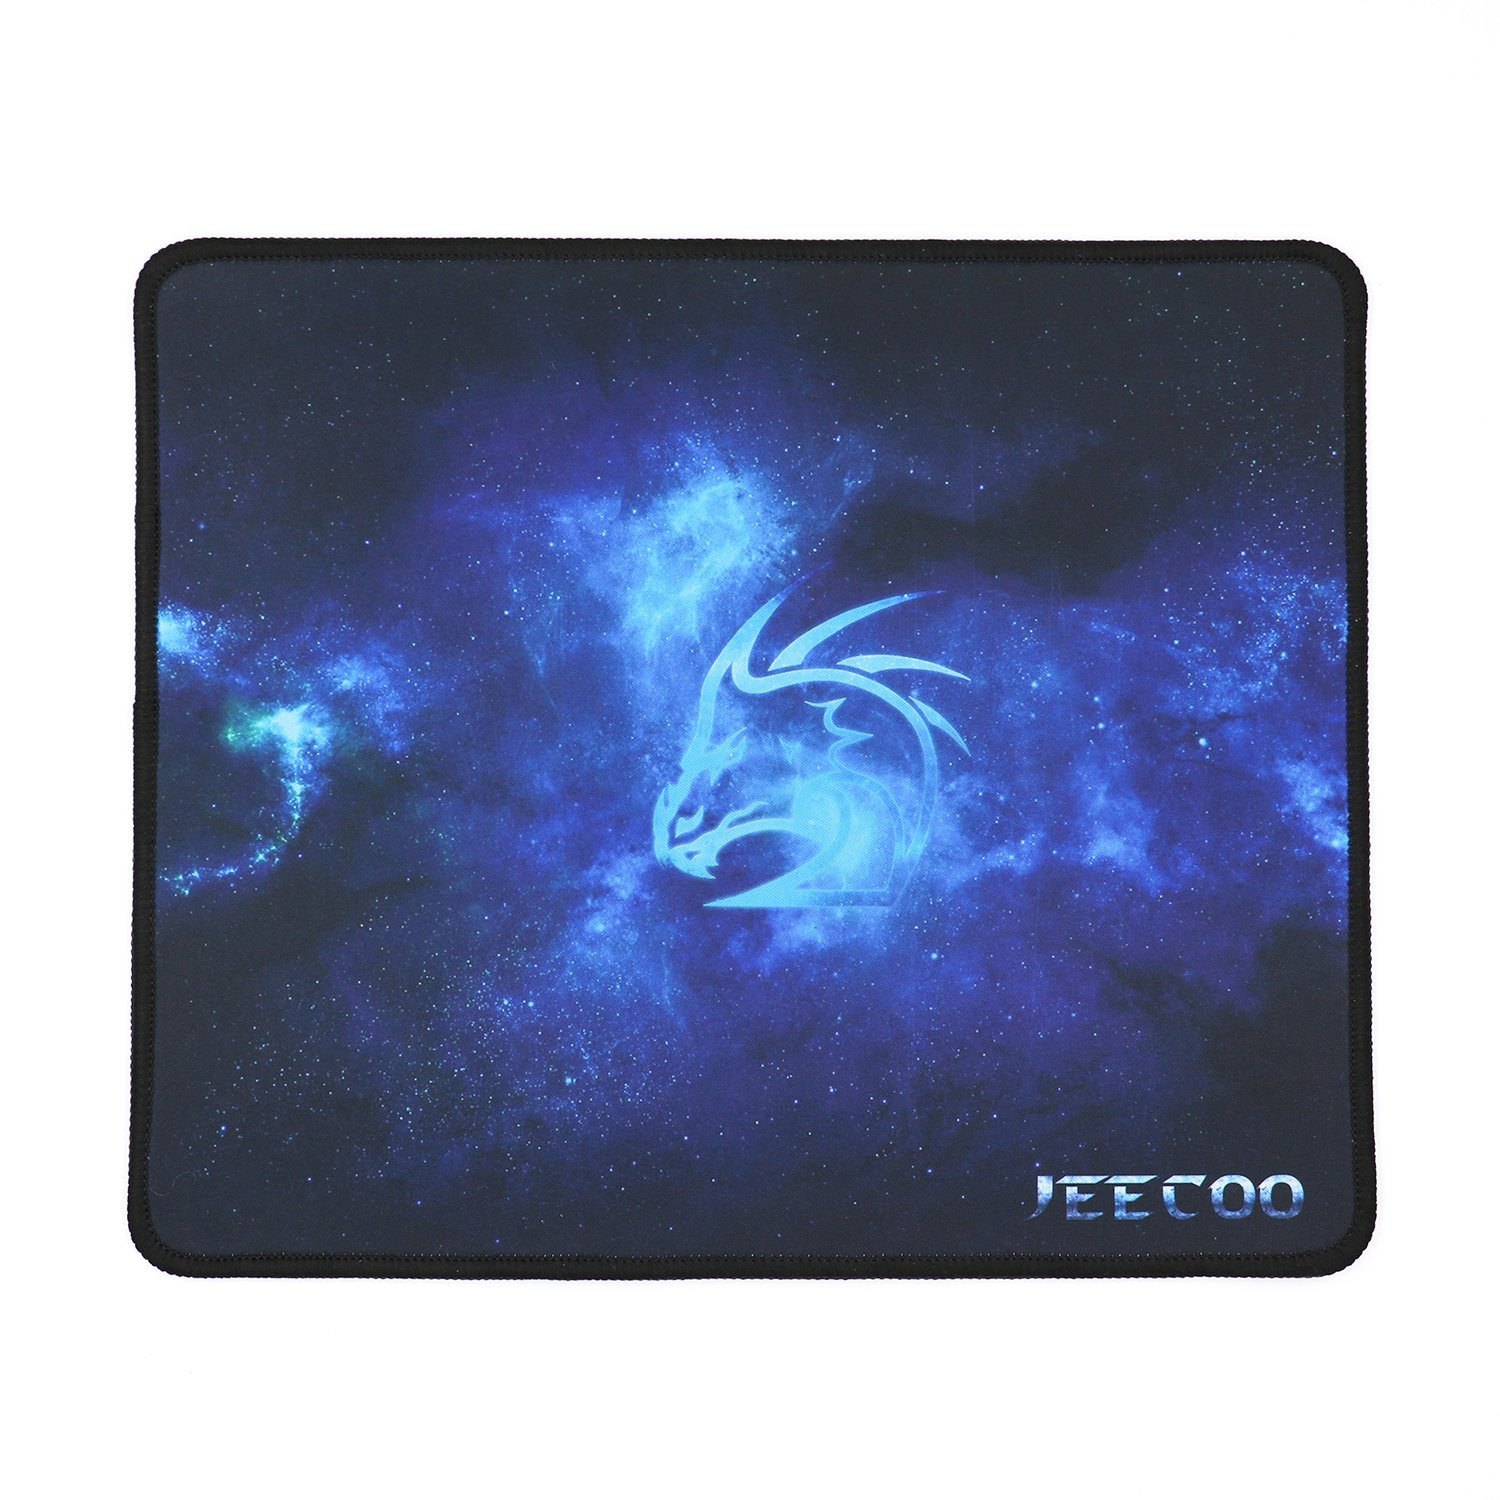 Jeecoo Gaming Mouse Pad Non-Slip Rubber Mouse Mat Silk Texture Mousepad with Stitched Edges 12.5' x 10.5' P001S